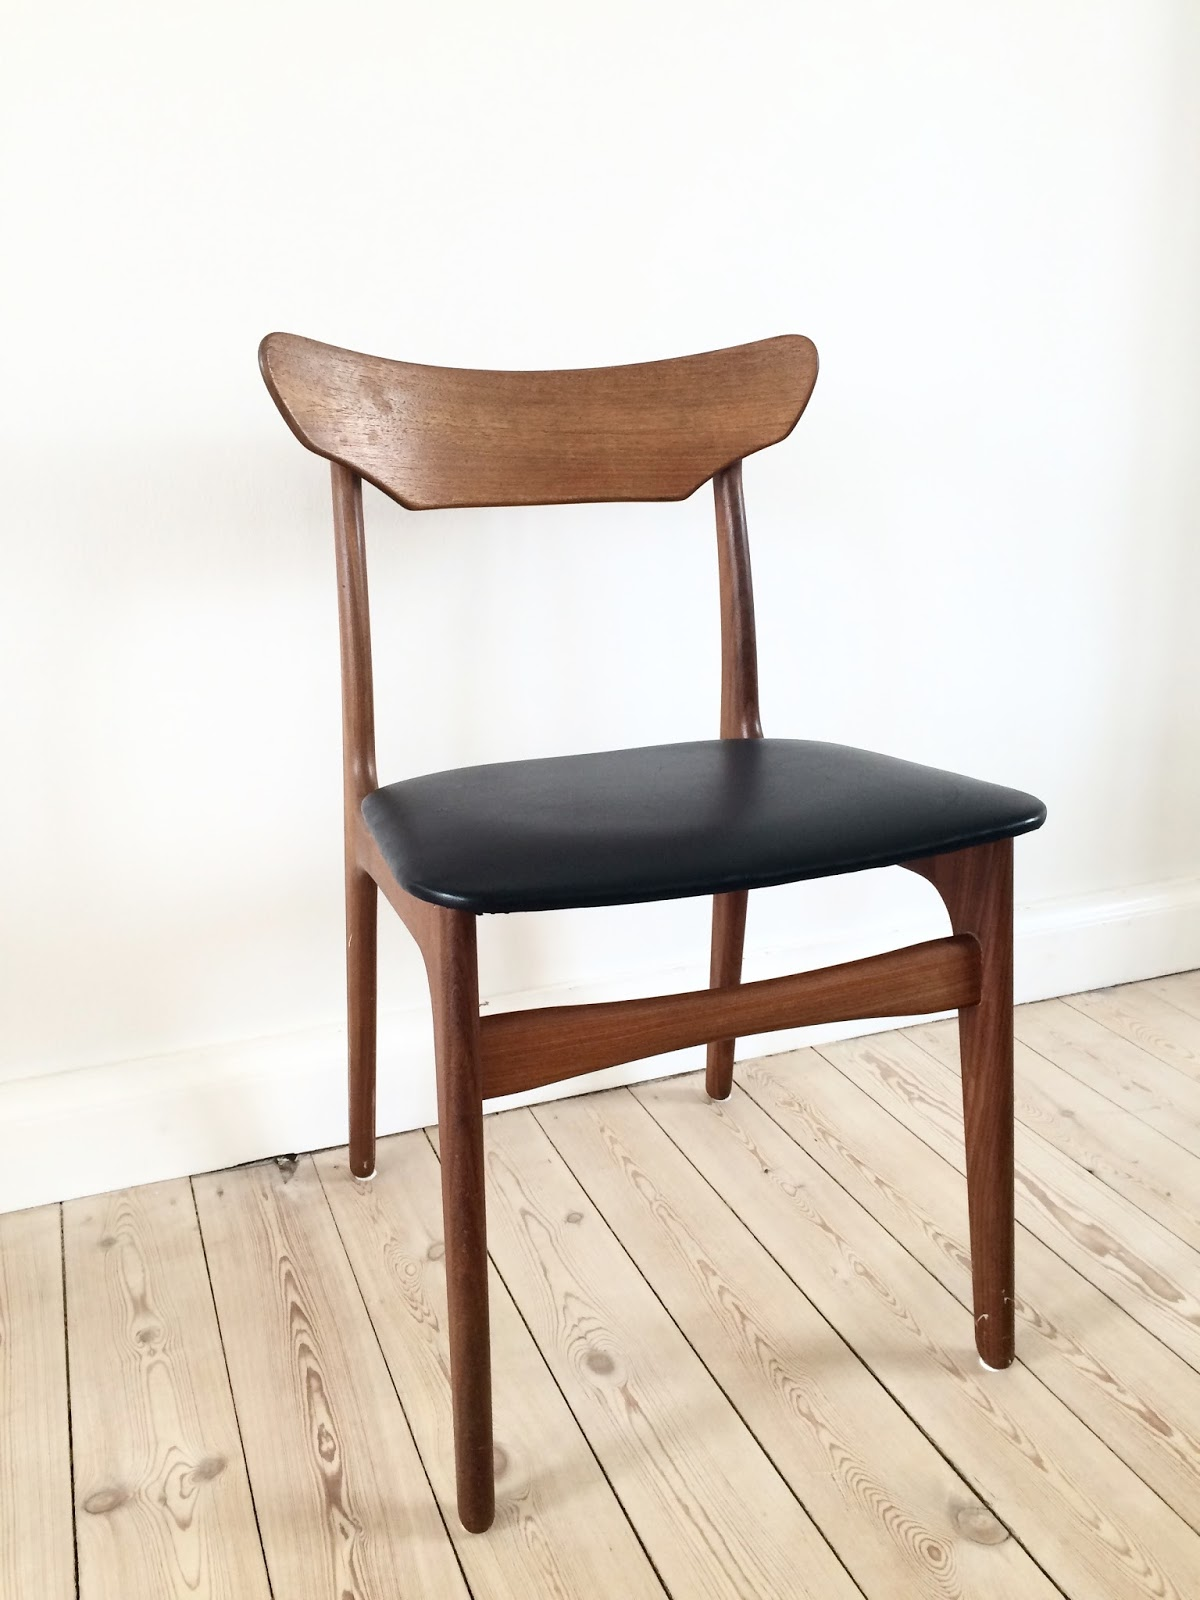 Retro furniture: schiønning & elgaard teak stol